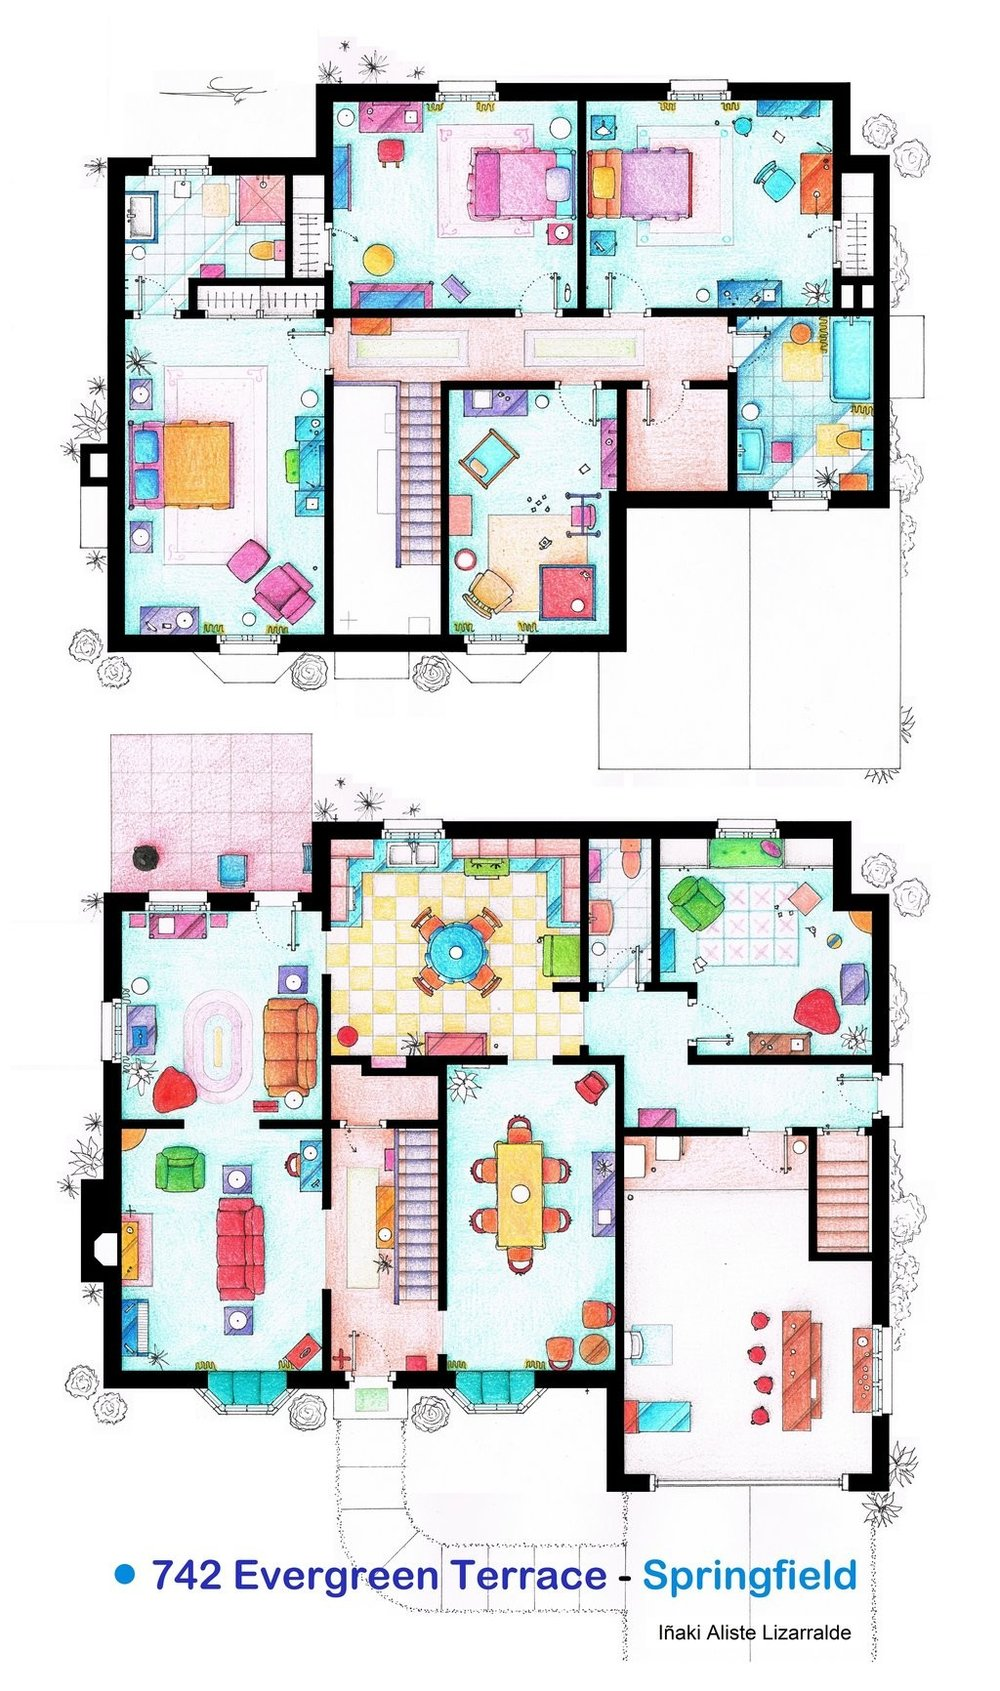 house_of_simpson_family___both_floorplans_by_nikneuk-d5tzvau_(1).jpg